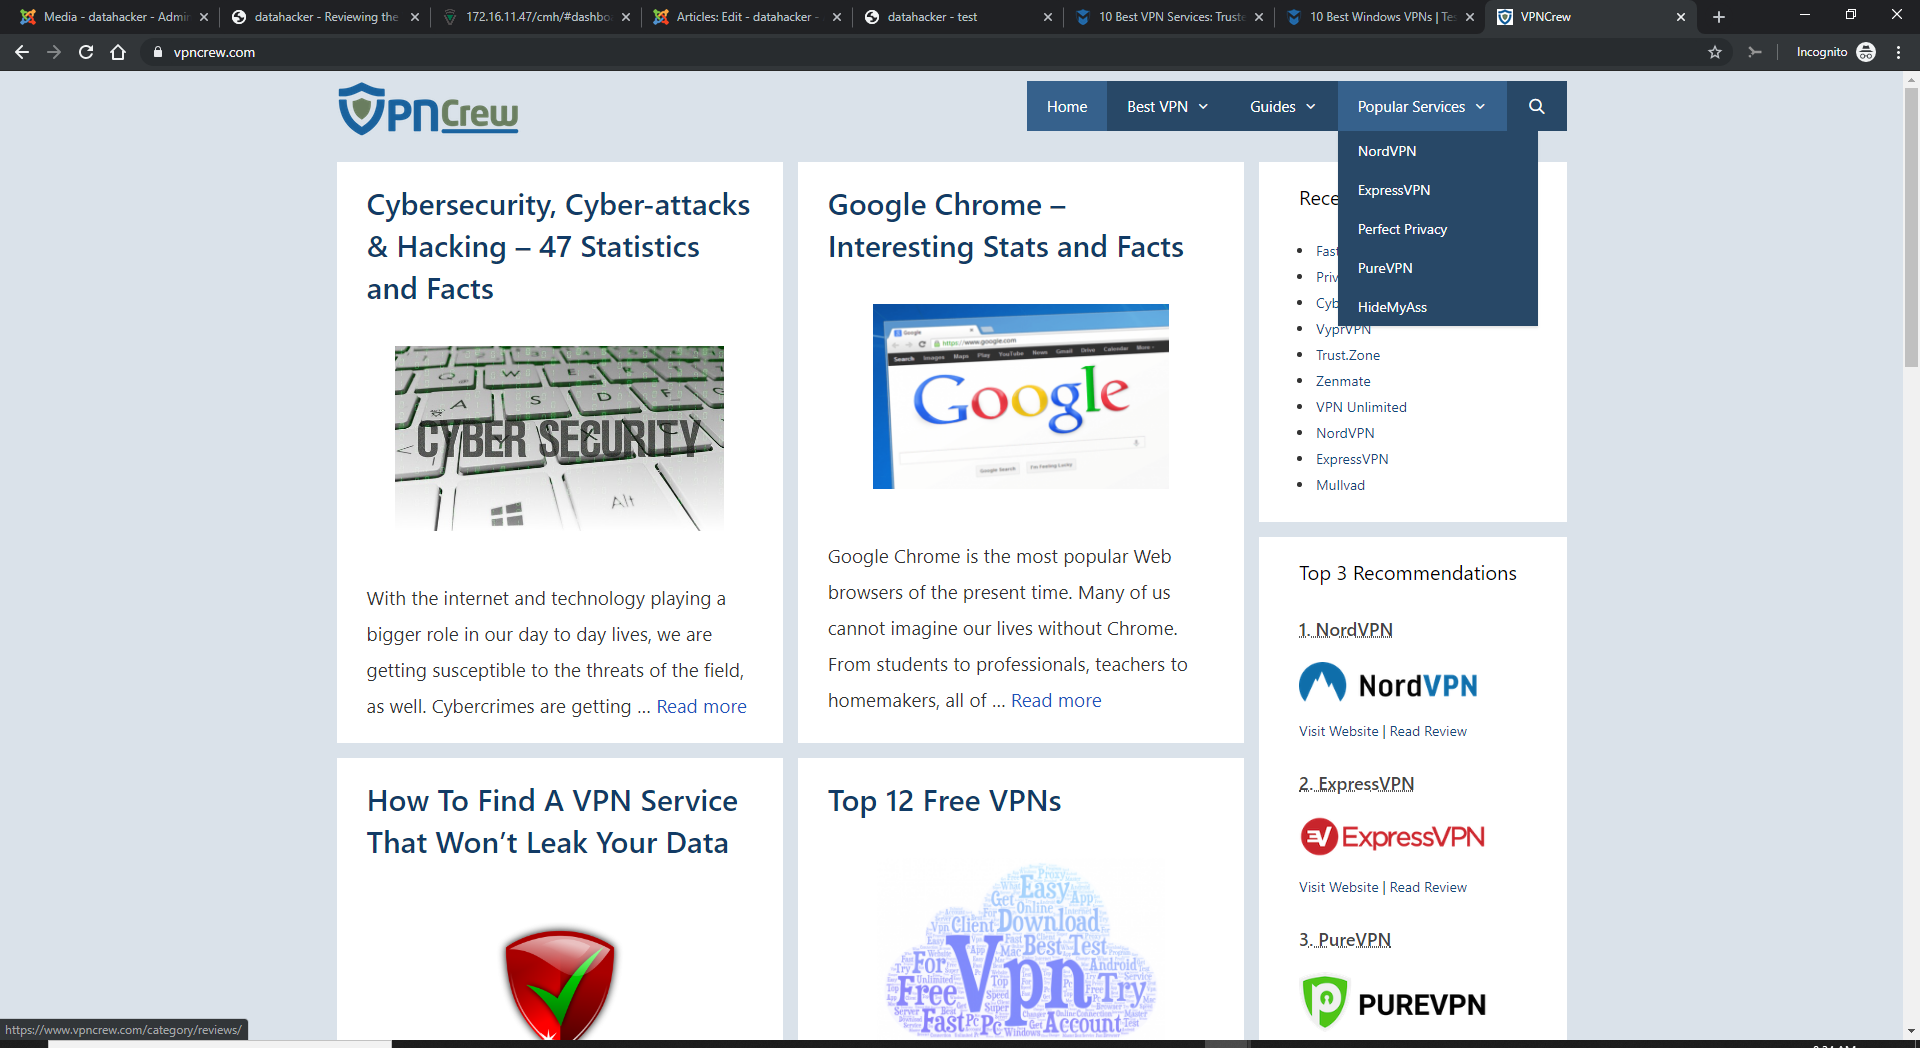 VPN Crew's website has the look and feel of an automated marketing blog